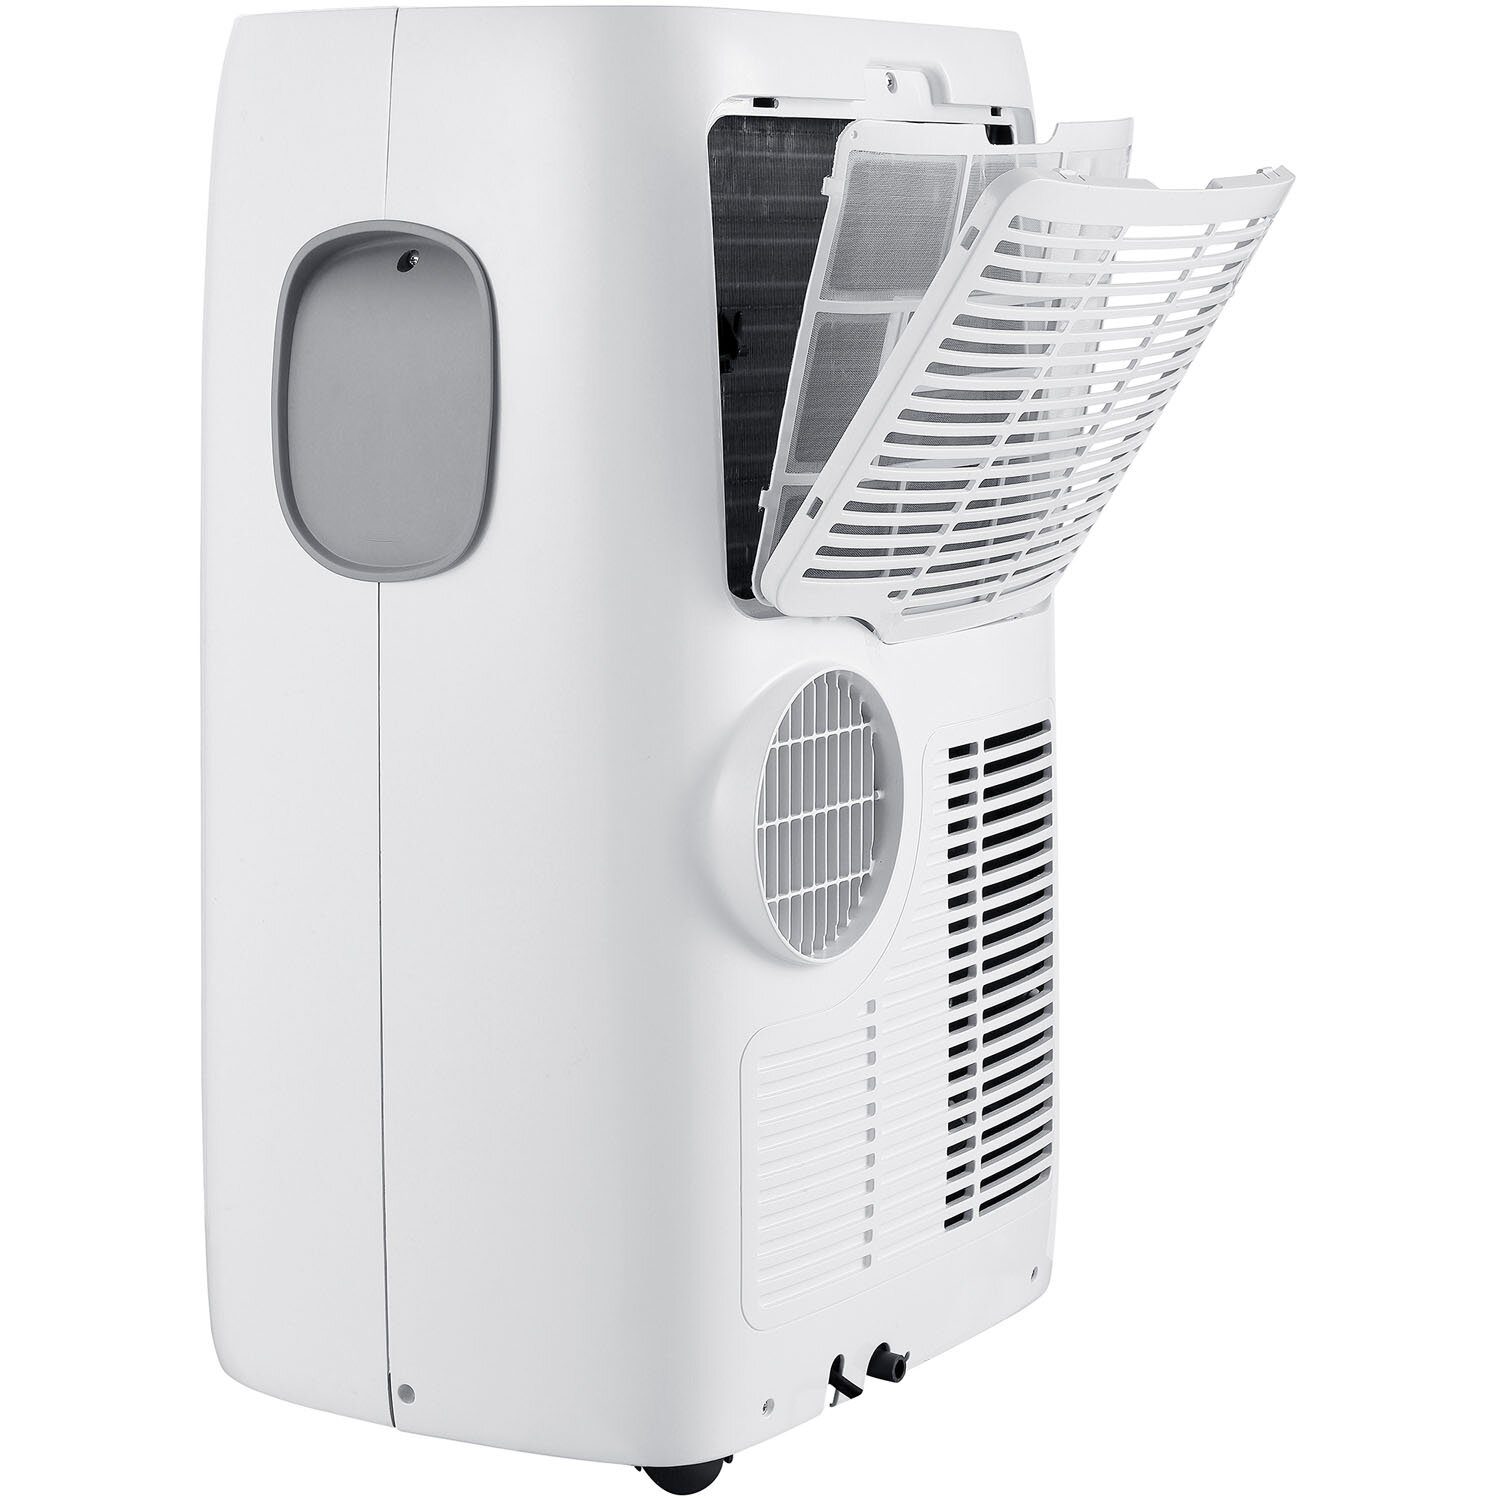 #60666B Emerson Quiet Kool 8 000 BTU Portable Air Conditioner With  Most Recent 13700 Quiet Portable Air Conditioner image with 1500x1500 px on helpvideos.info - Air Conditioners, Air Coolers and more